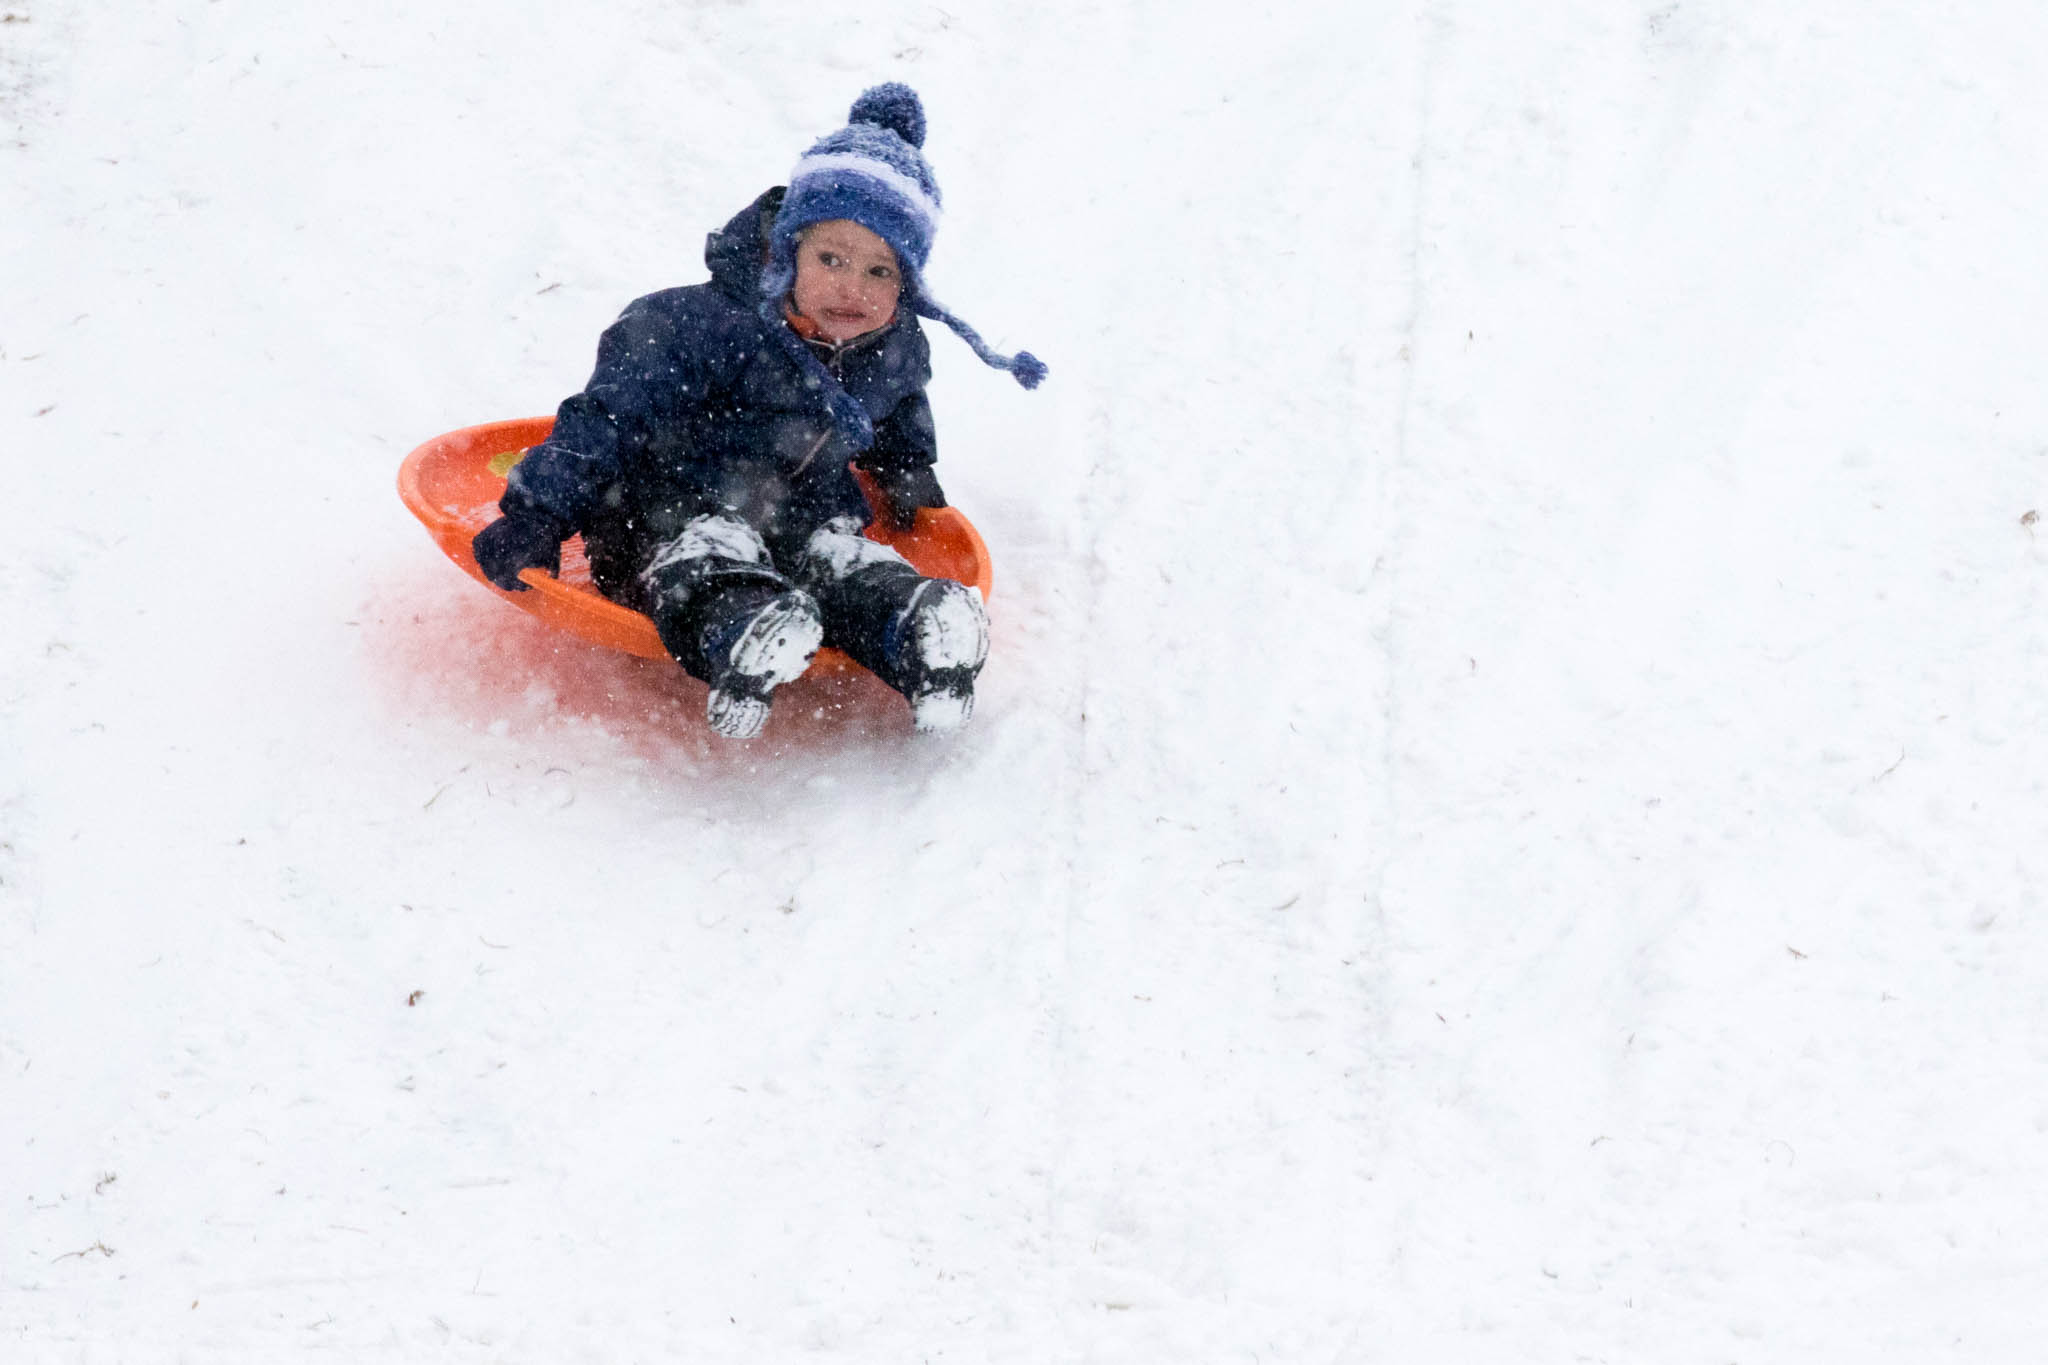 Child not entirely happy about riding a sled